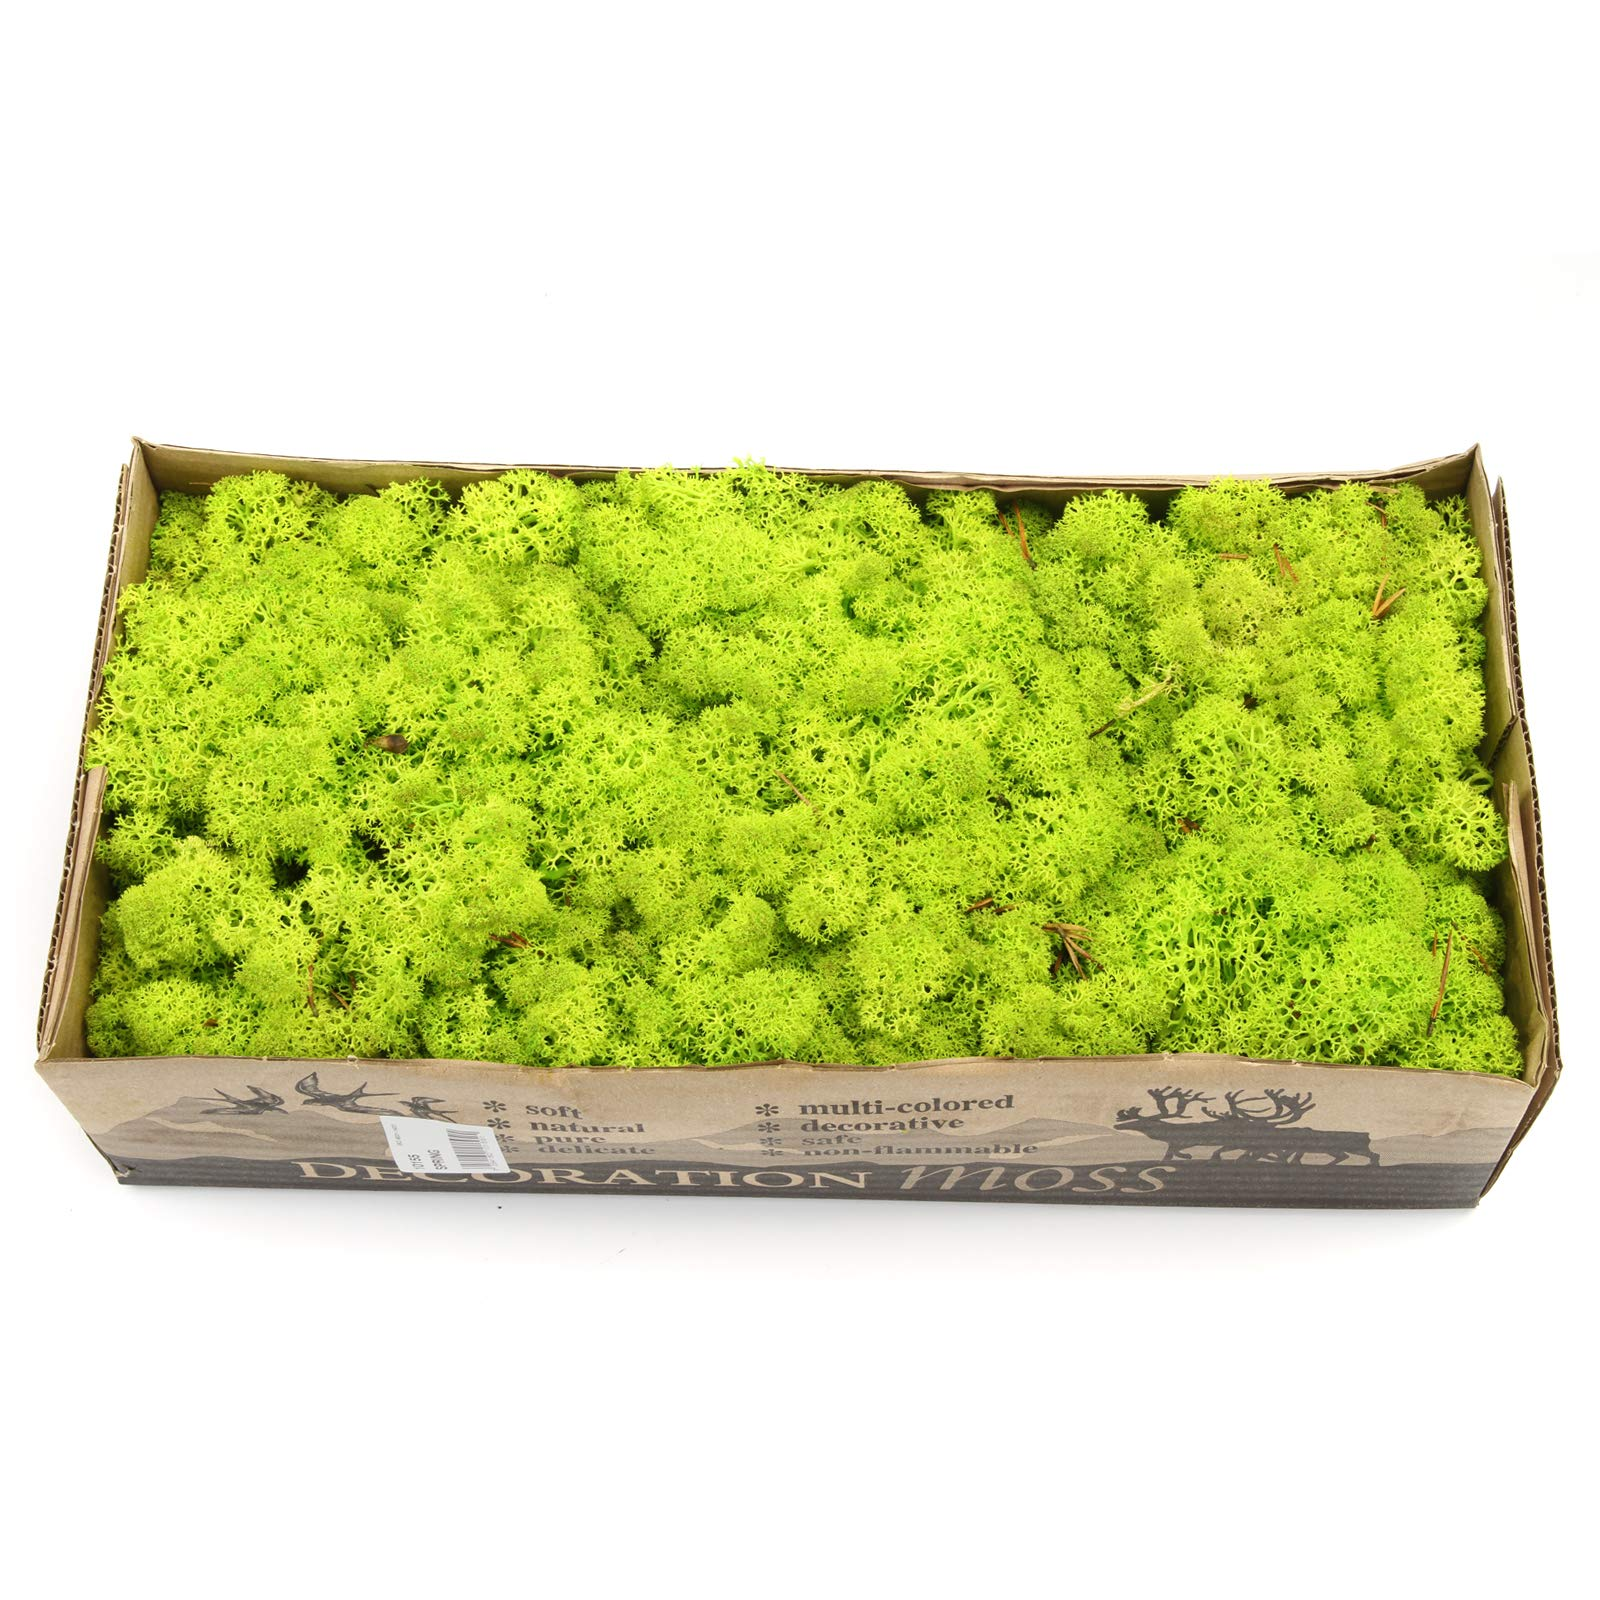 Long-Lasting Naturally Preserved Fresh Dried Forest Green Moss 1.1LB(500G) Bulk Case (Fluorescent Green) by Huayao